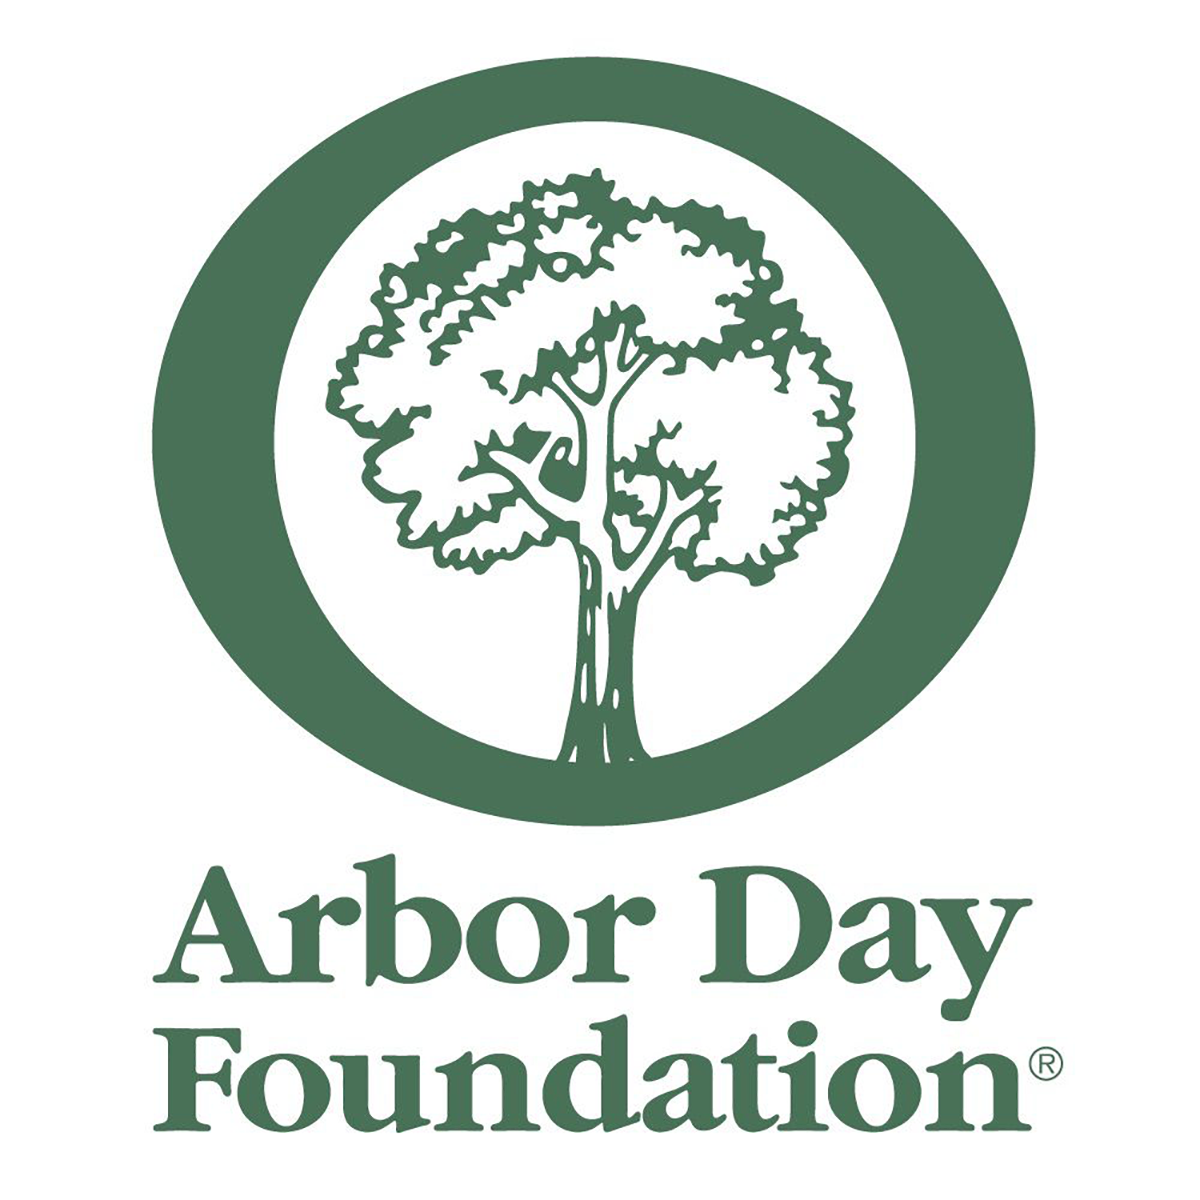 Biofriendly Proudly Supports the Arbor Day Foundation